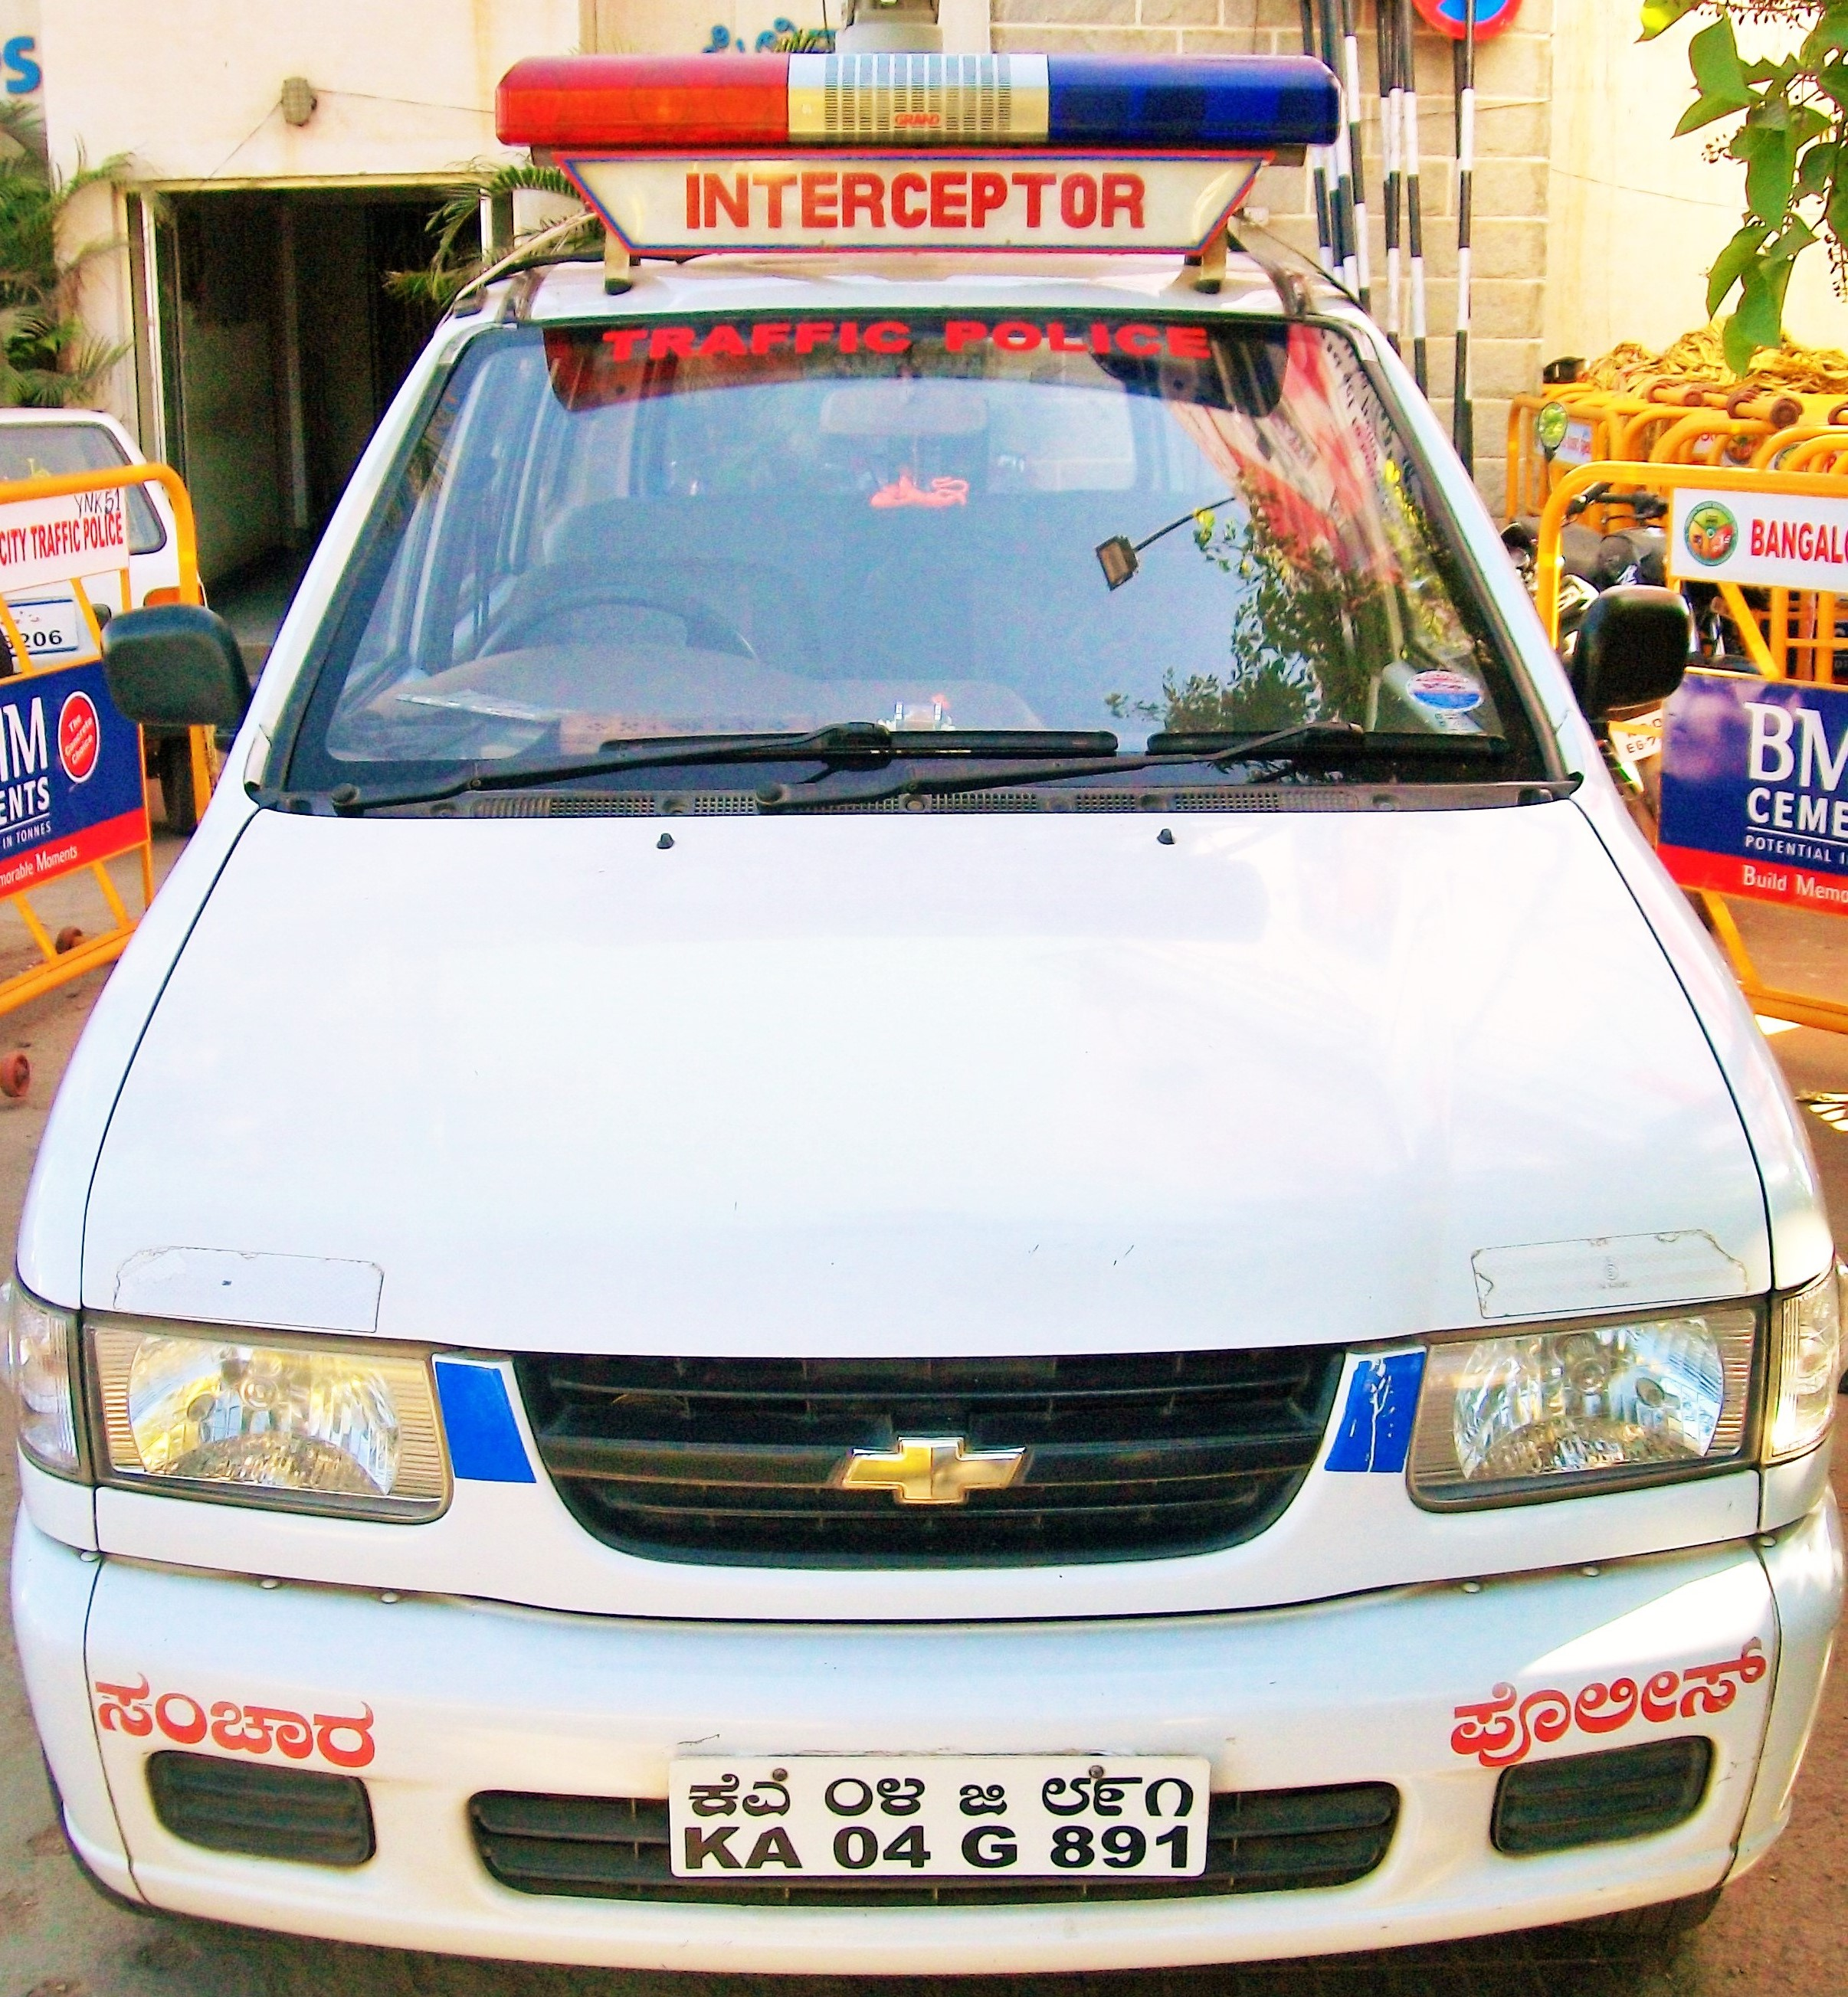 One_of_the_typical_Interceptors_used_by_the_Bangalore_Traffic_Police (3)